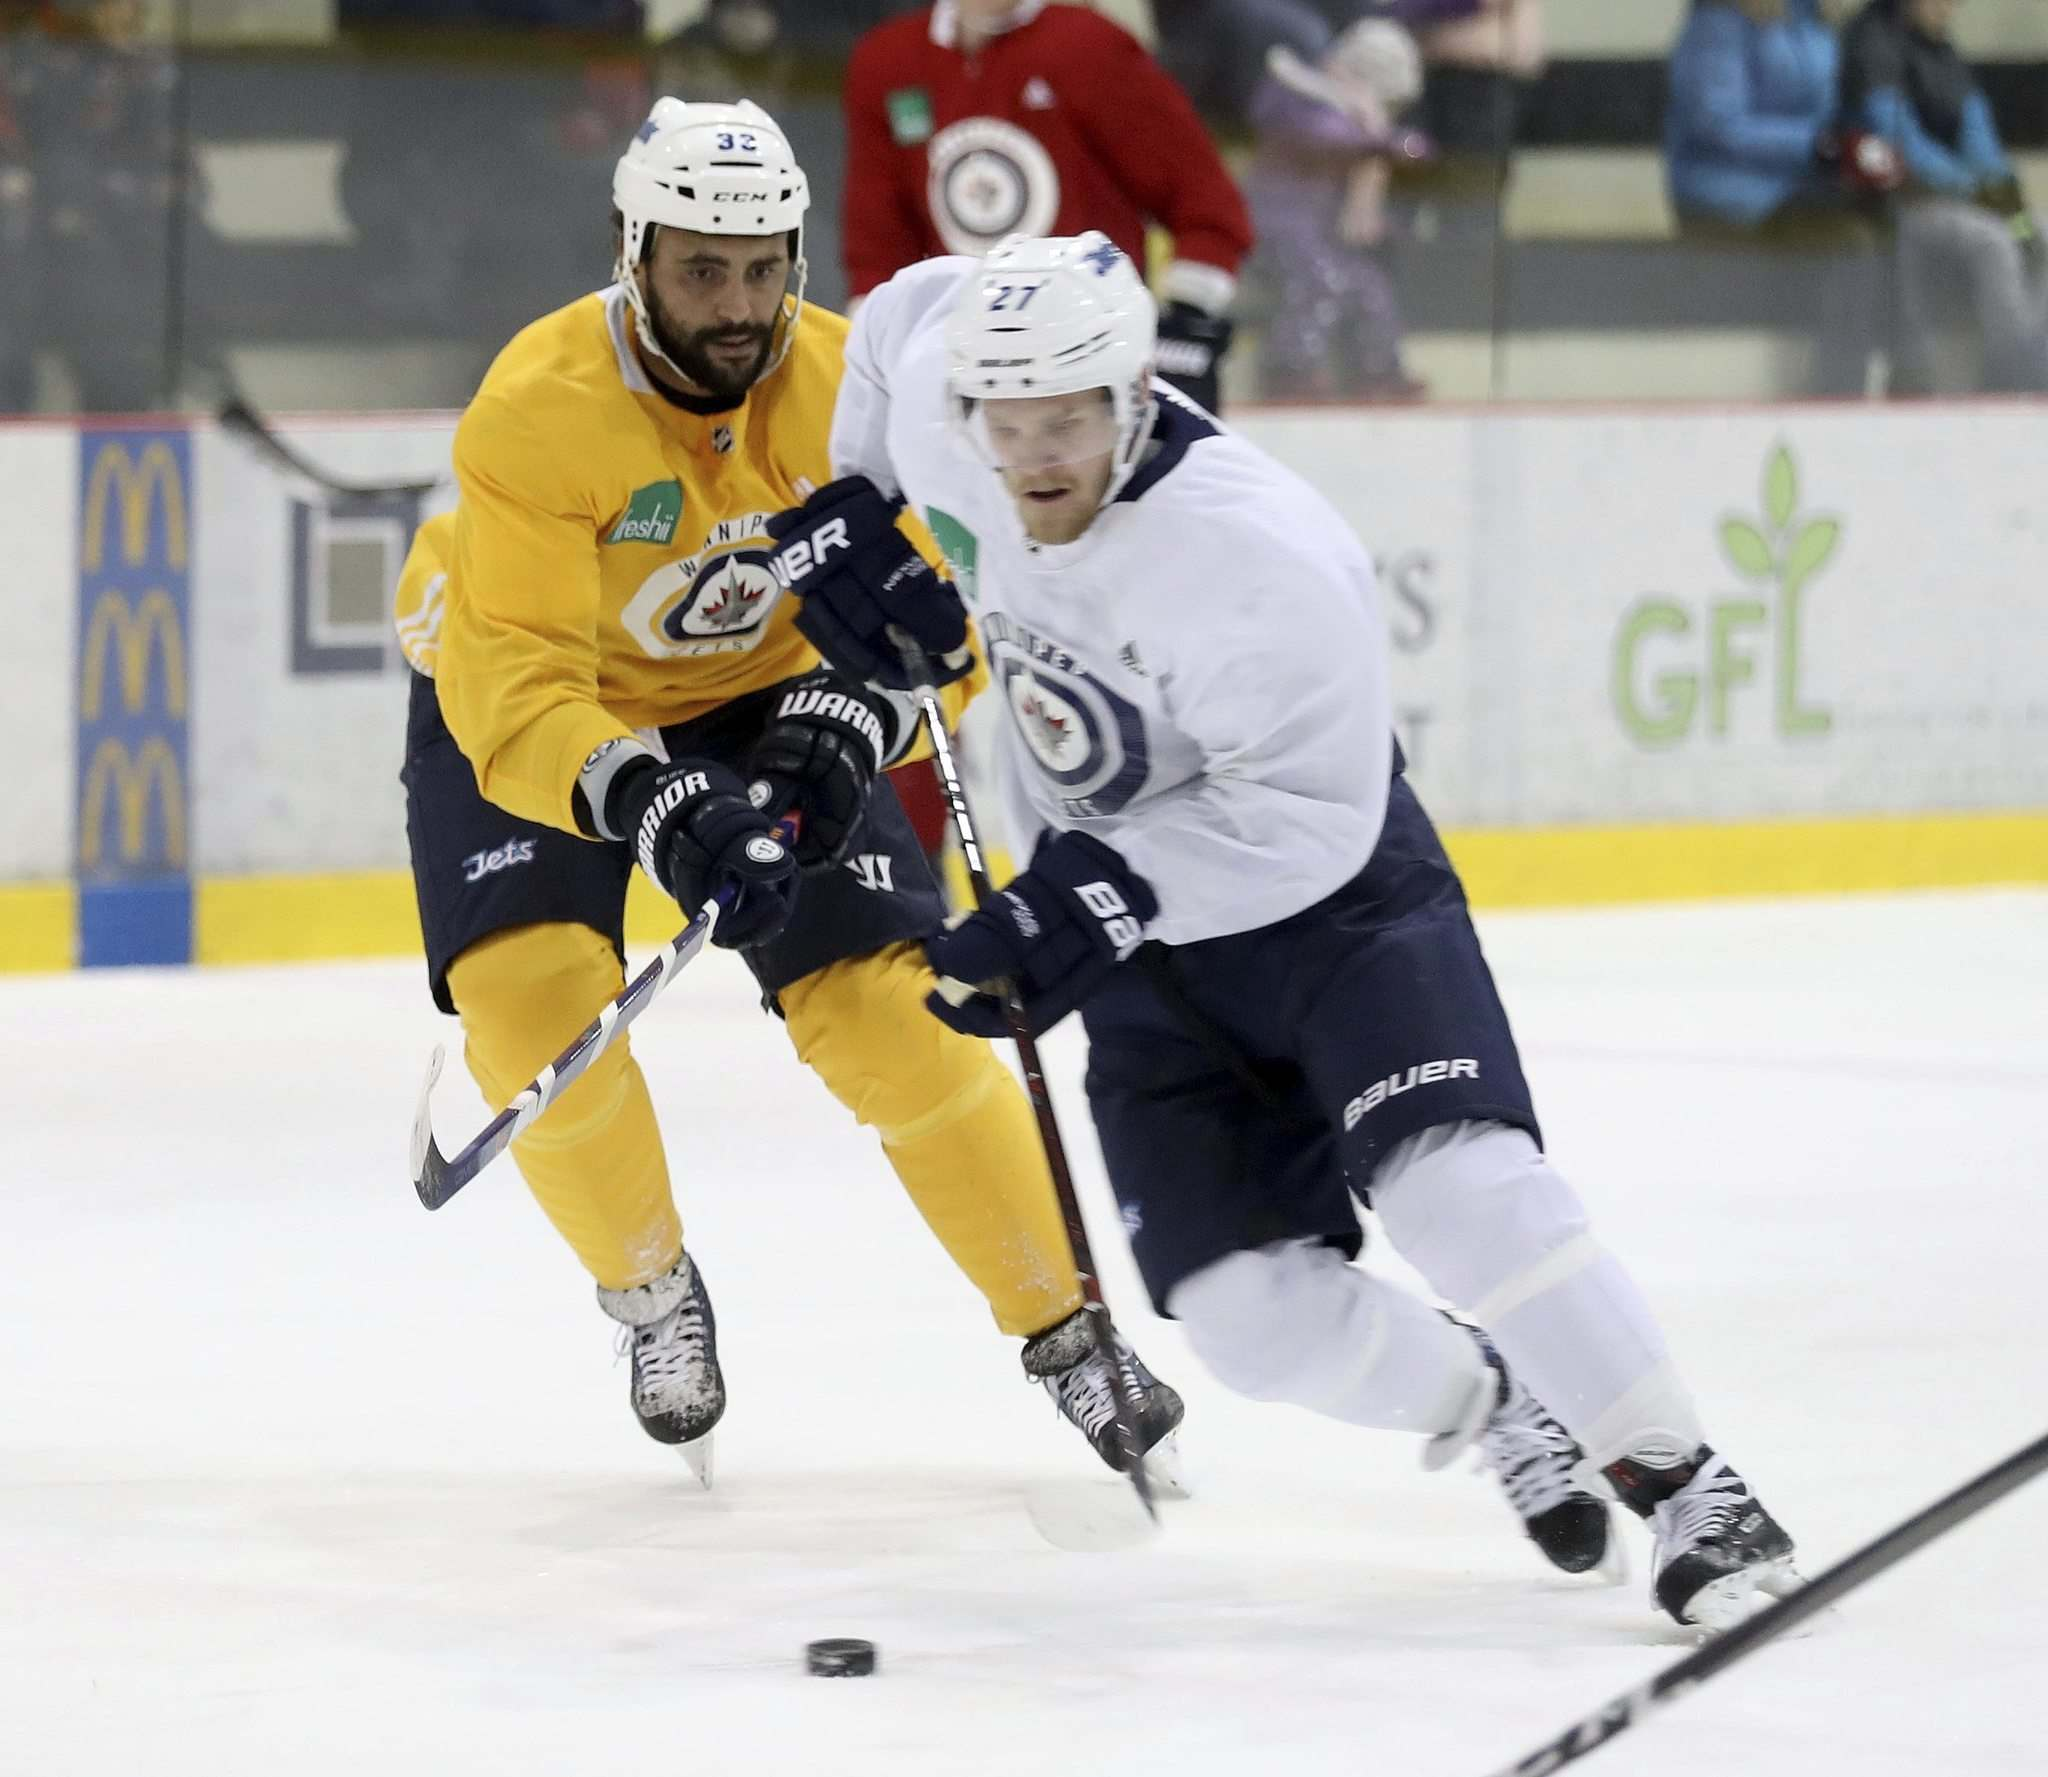 Winnipeg Jets&#39; Dustin Byfuglien (33) and Nikolaj Ehlers (27) at practice Saturday at the Iceplex. Byfuglien will draw back into the lineup tonight. (Trevor Hagan / Winnipeg Free Press)</p>